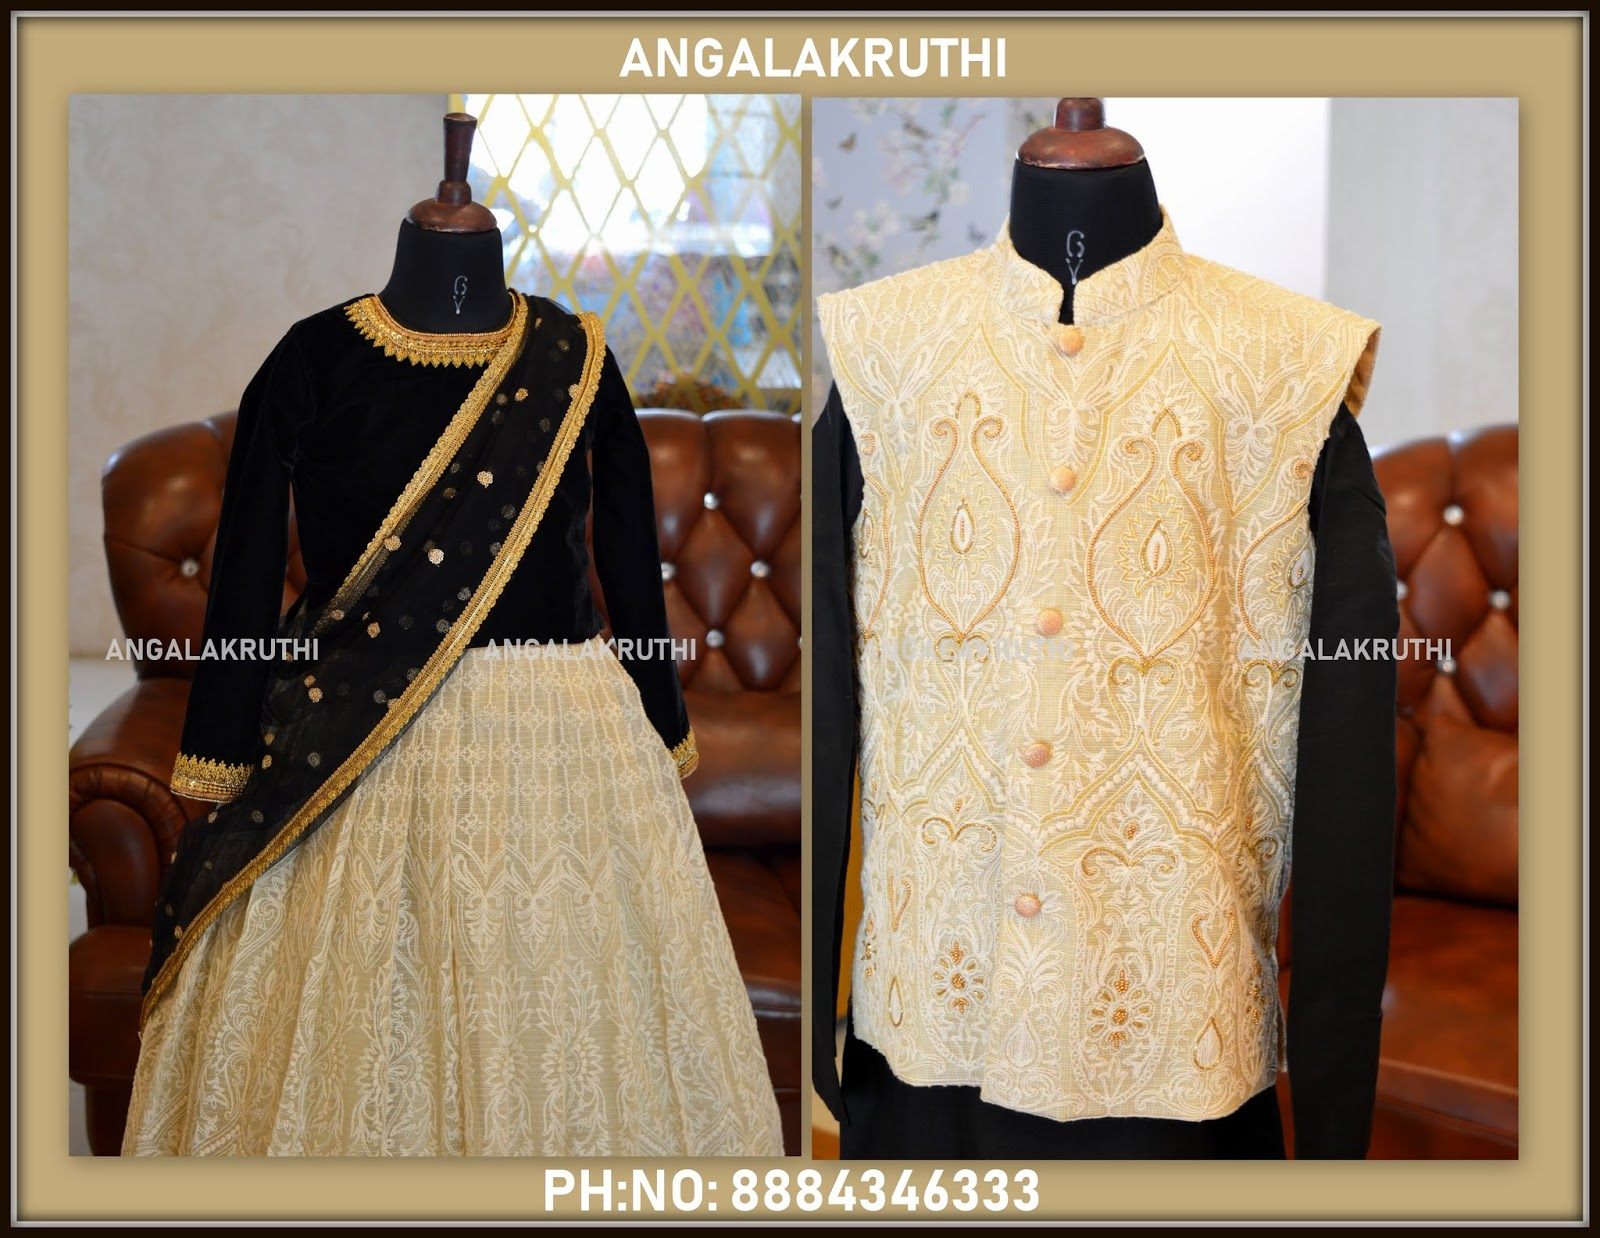 f6ae573b5b Dad and Son matching dress designs by Angalakruthi boutique in bangalore